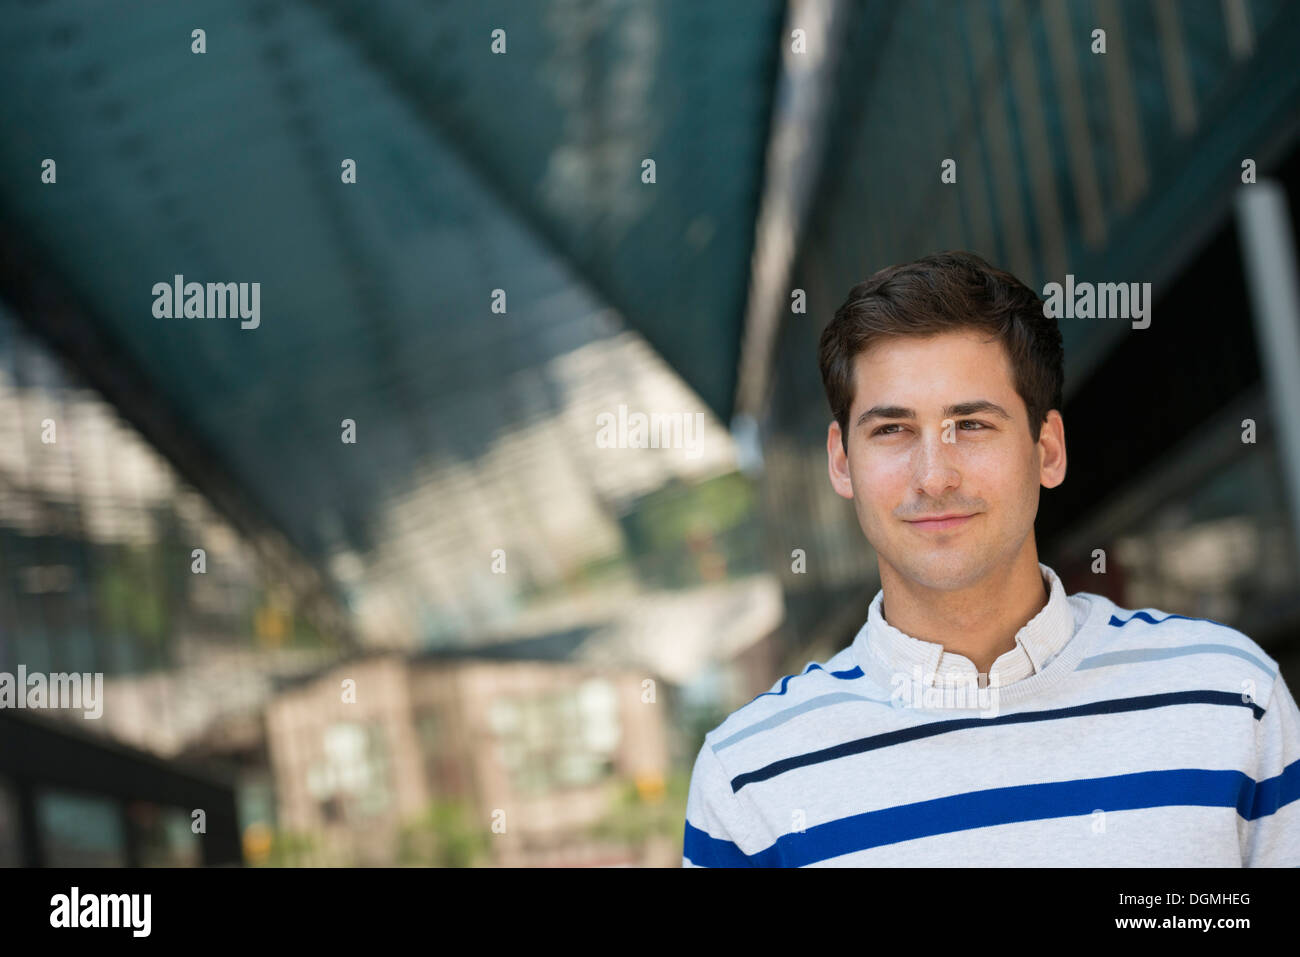 Business people on the move. A young man in a striped sweater looking into the distance. - Stock Image